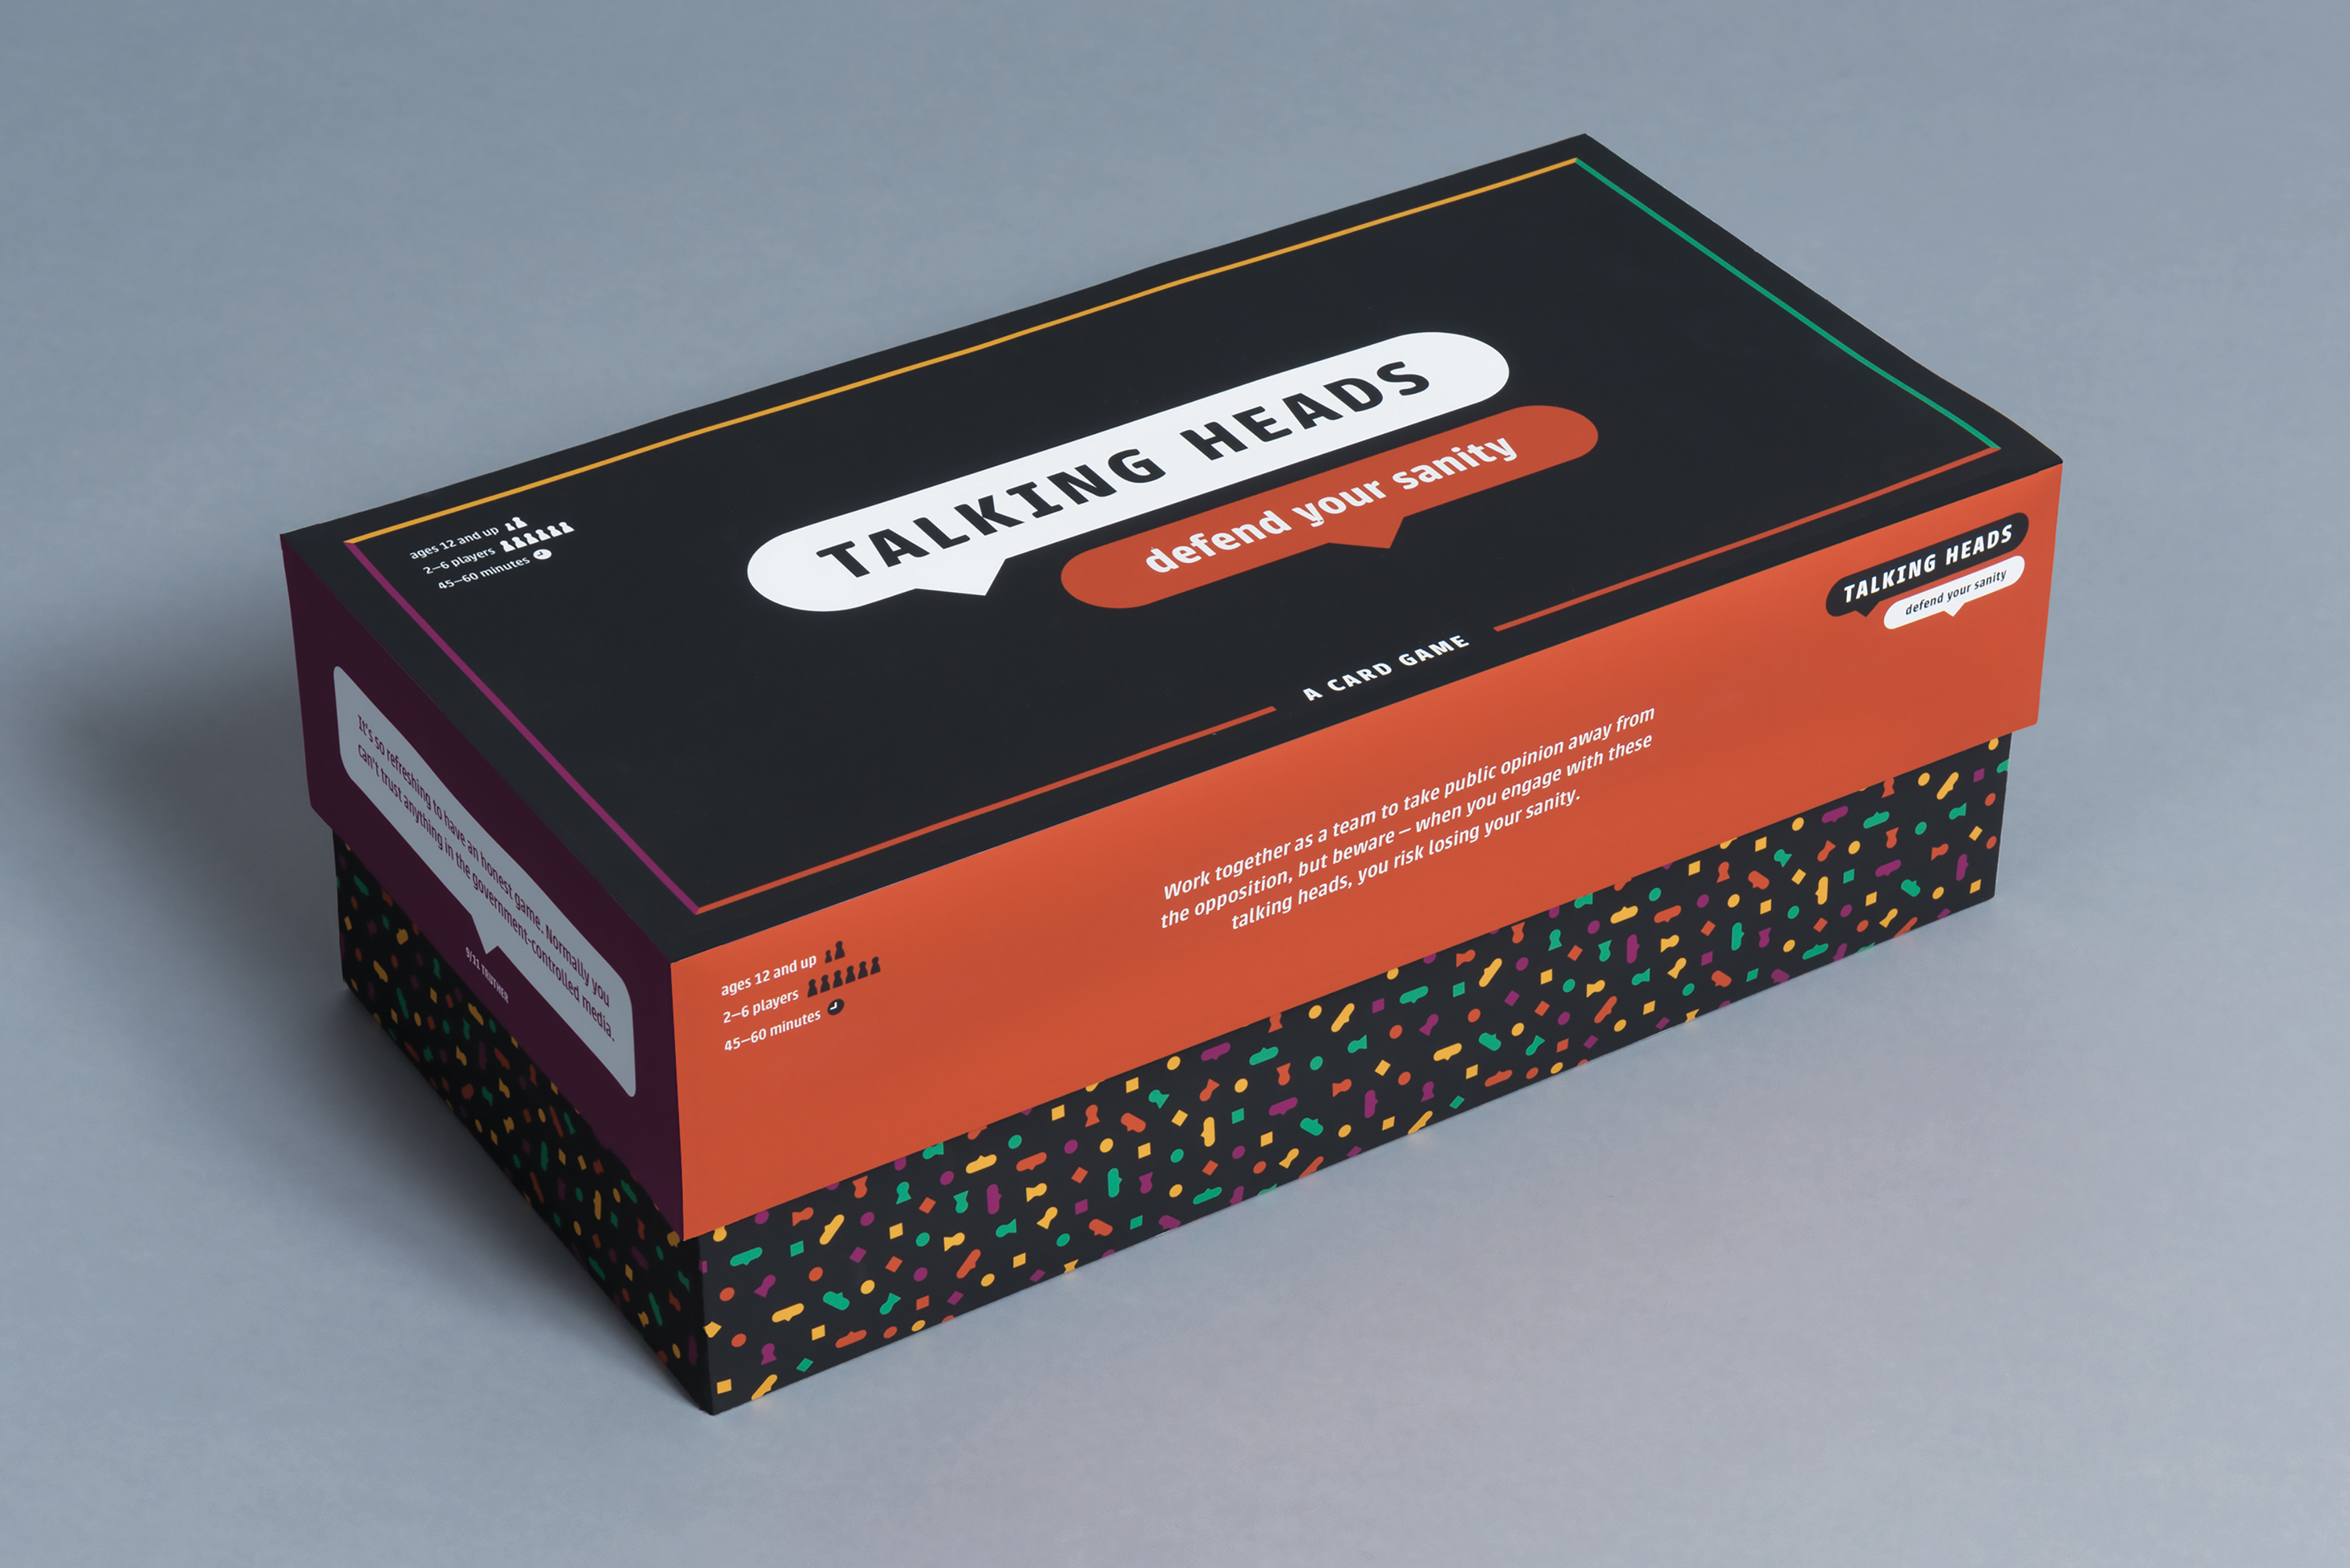 A photo of the exterior of the game box